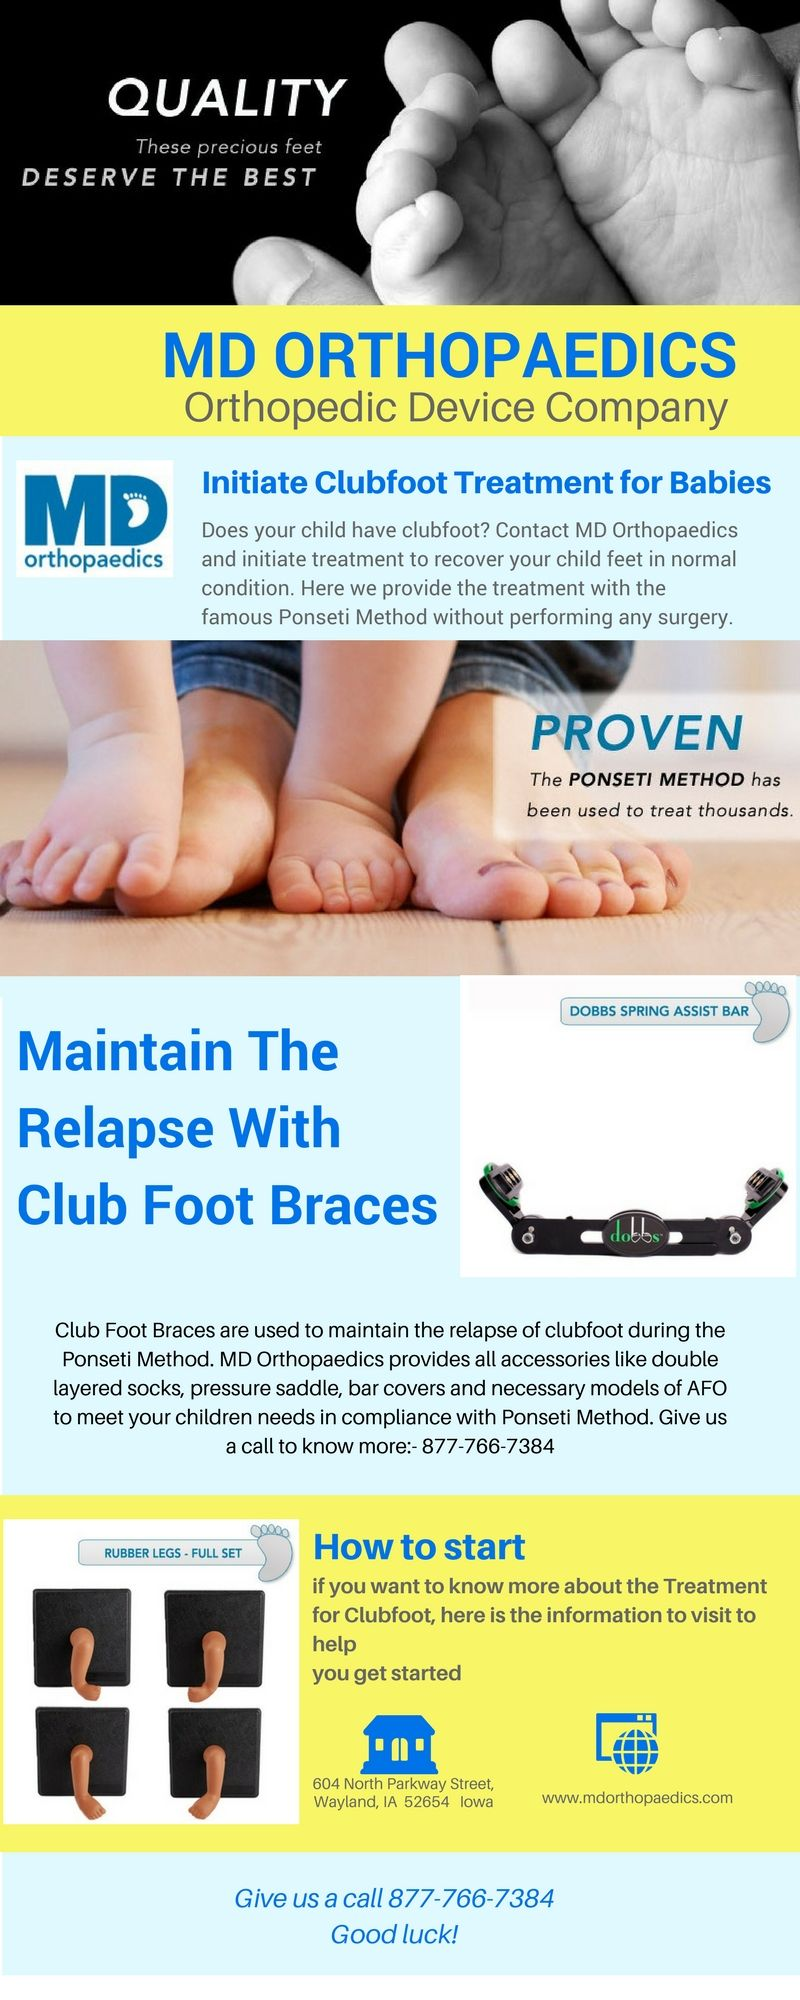 Ponseti Method For Clubfoot With Images Treatment Method